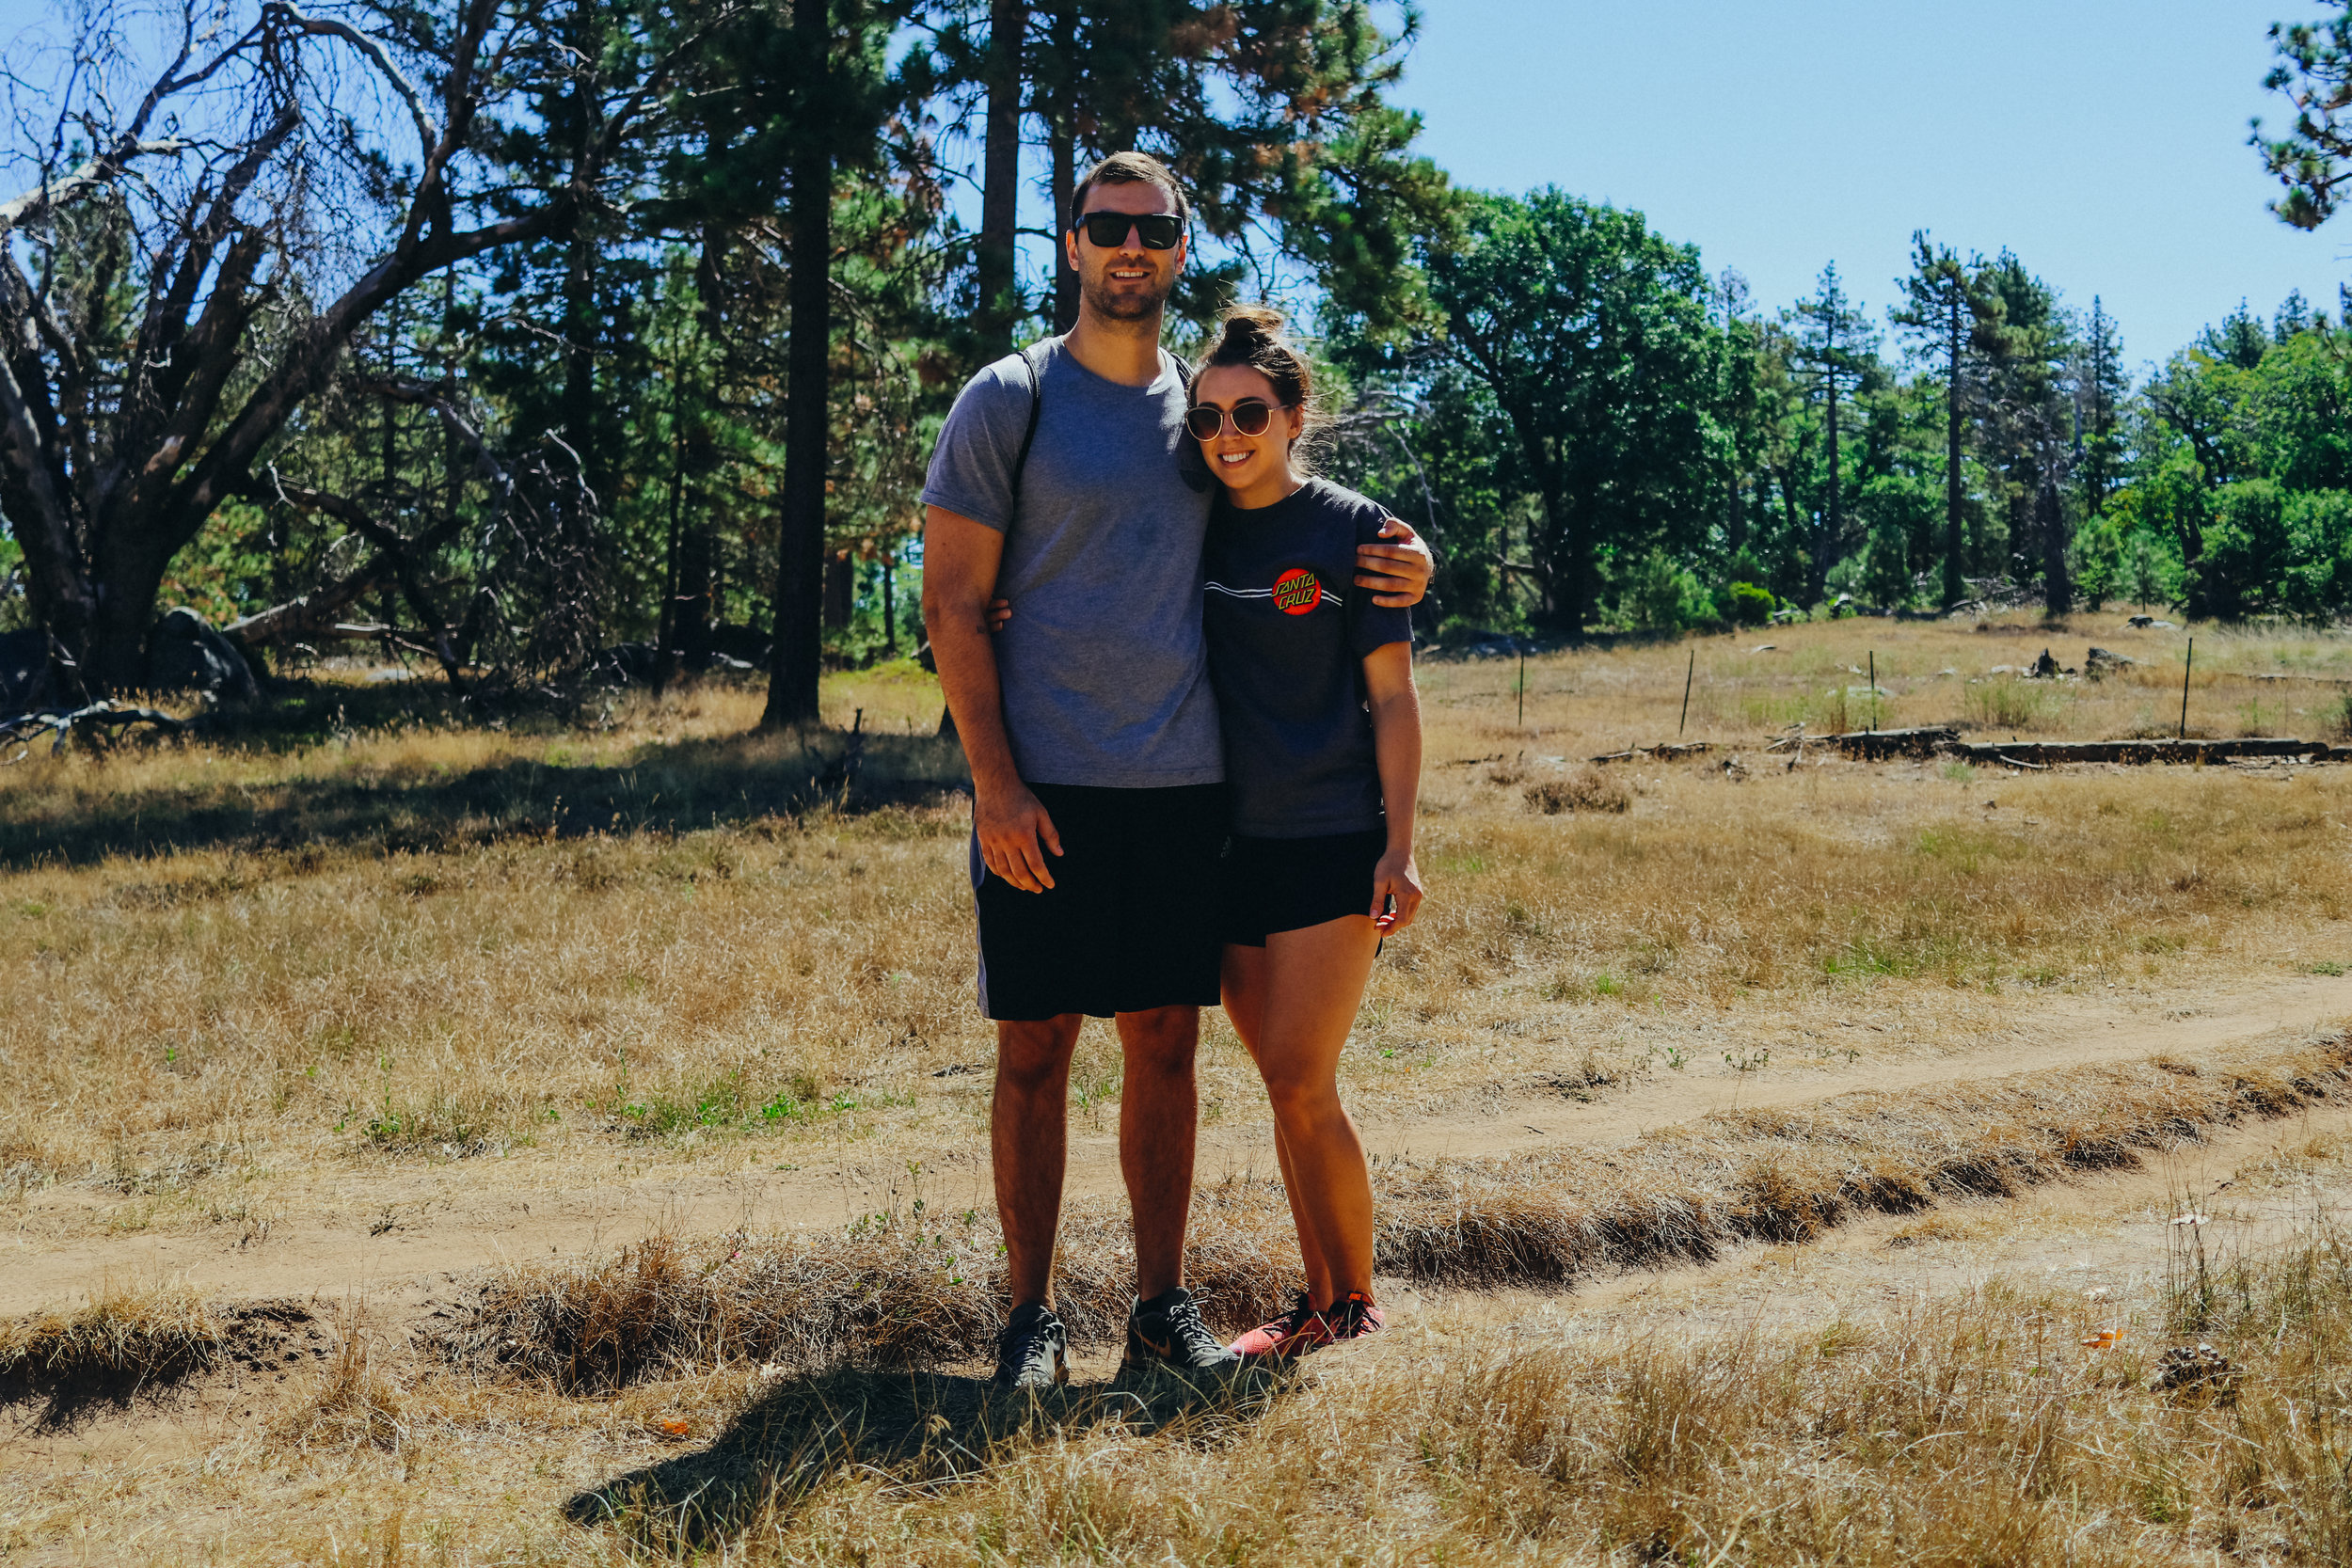 We found a stump in the clearing and used it for a self-timer. It was a beautiful day in Mount Laguna.